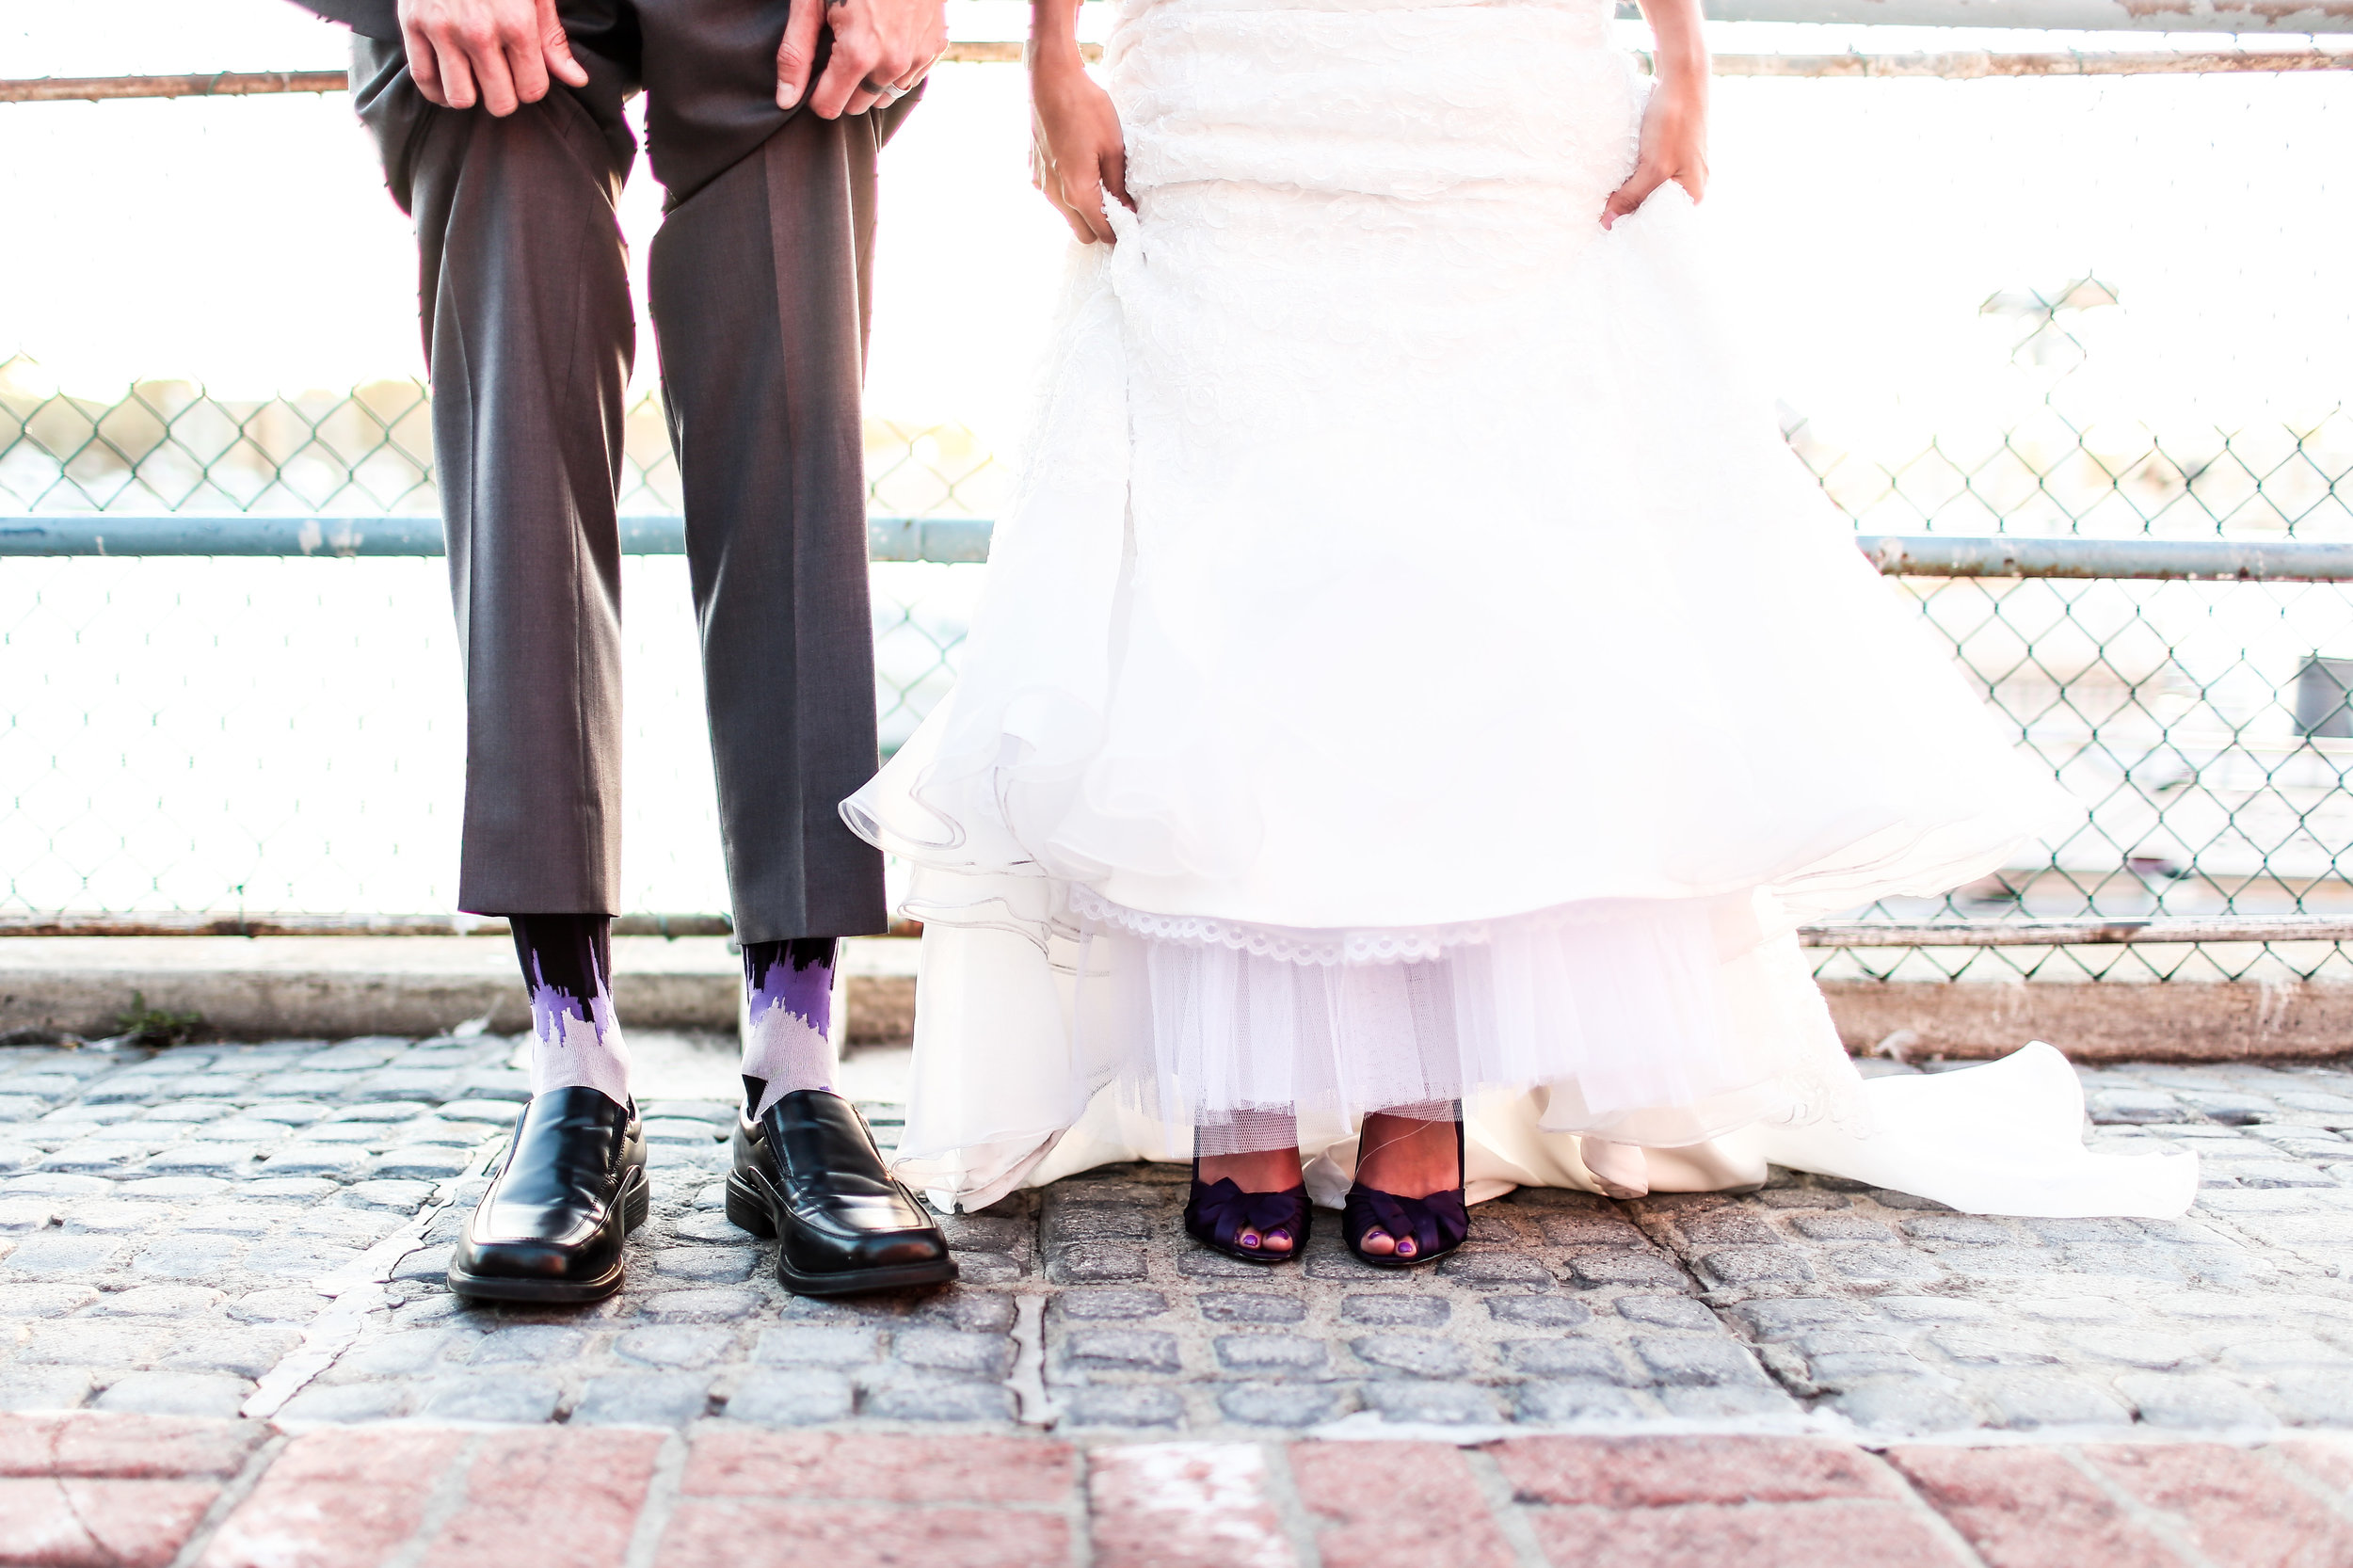 Purple was the color theme at Amanda and Eric's Marina del Rey wedding.